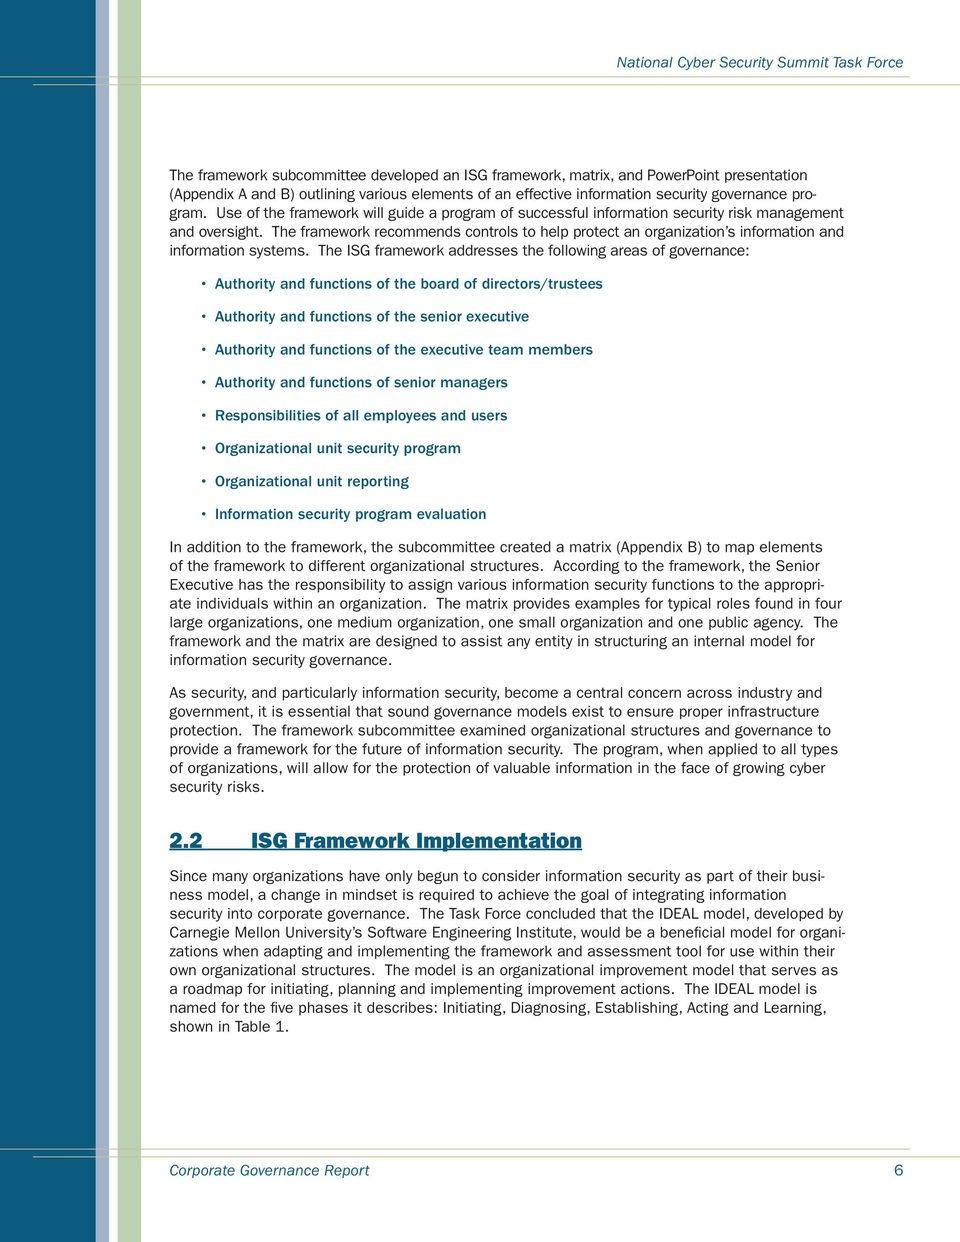 The framework recommends controls to help protect an organization s information and information systems.